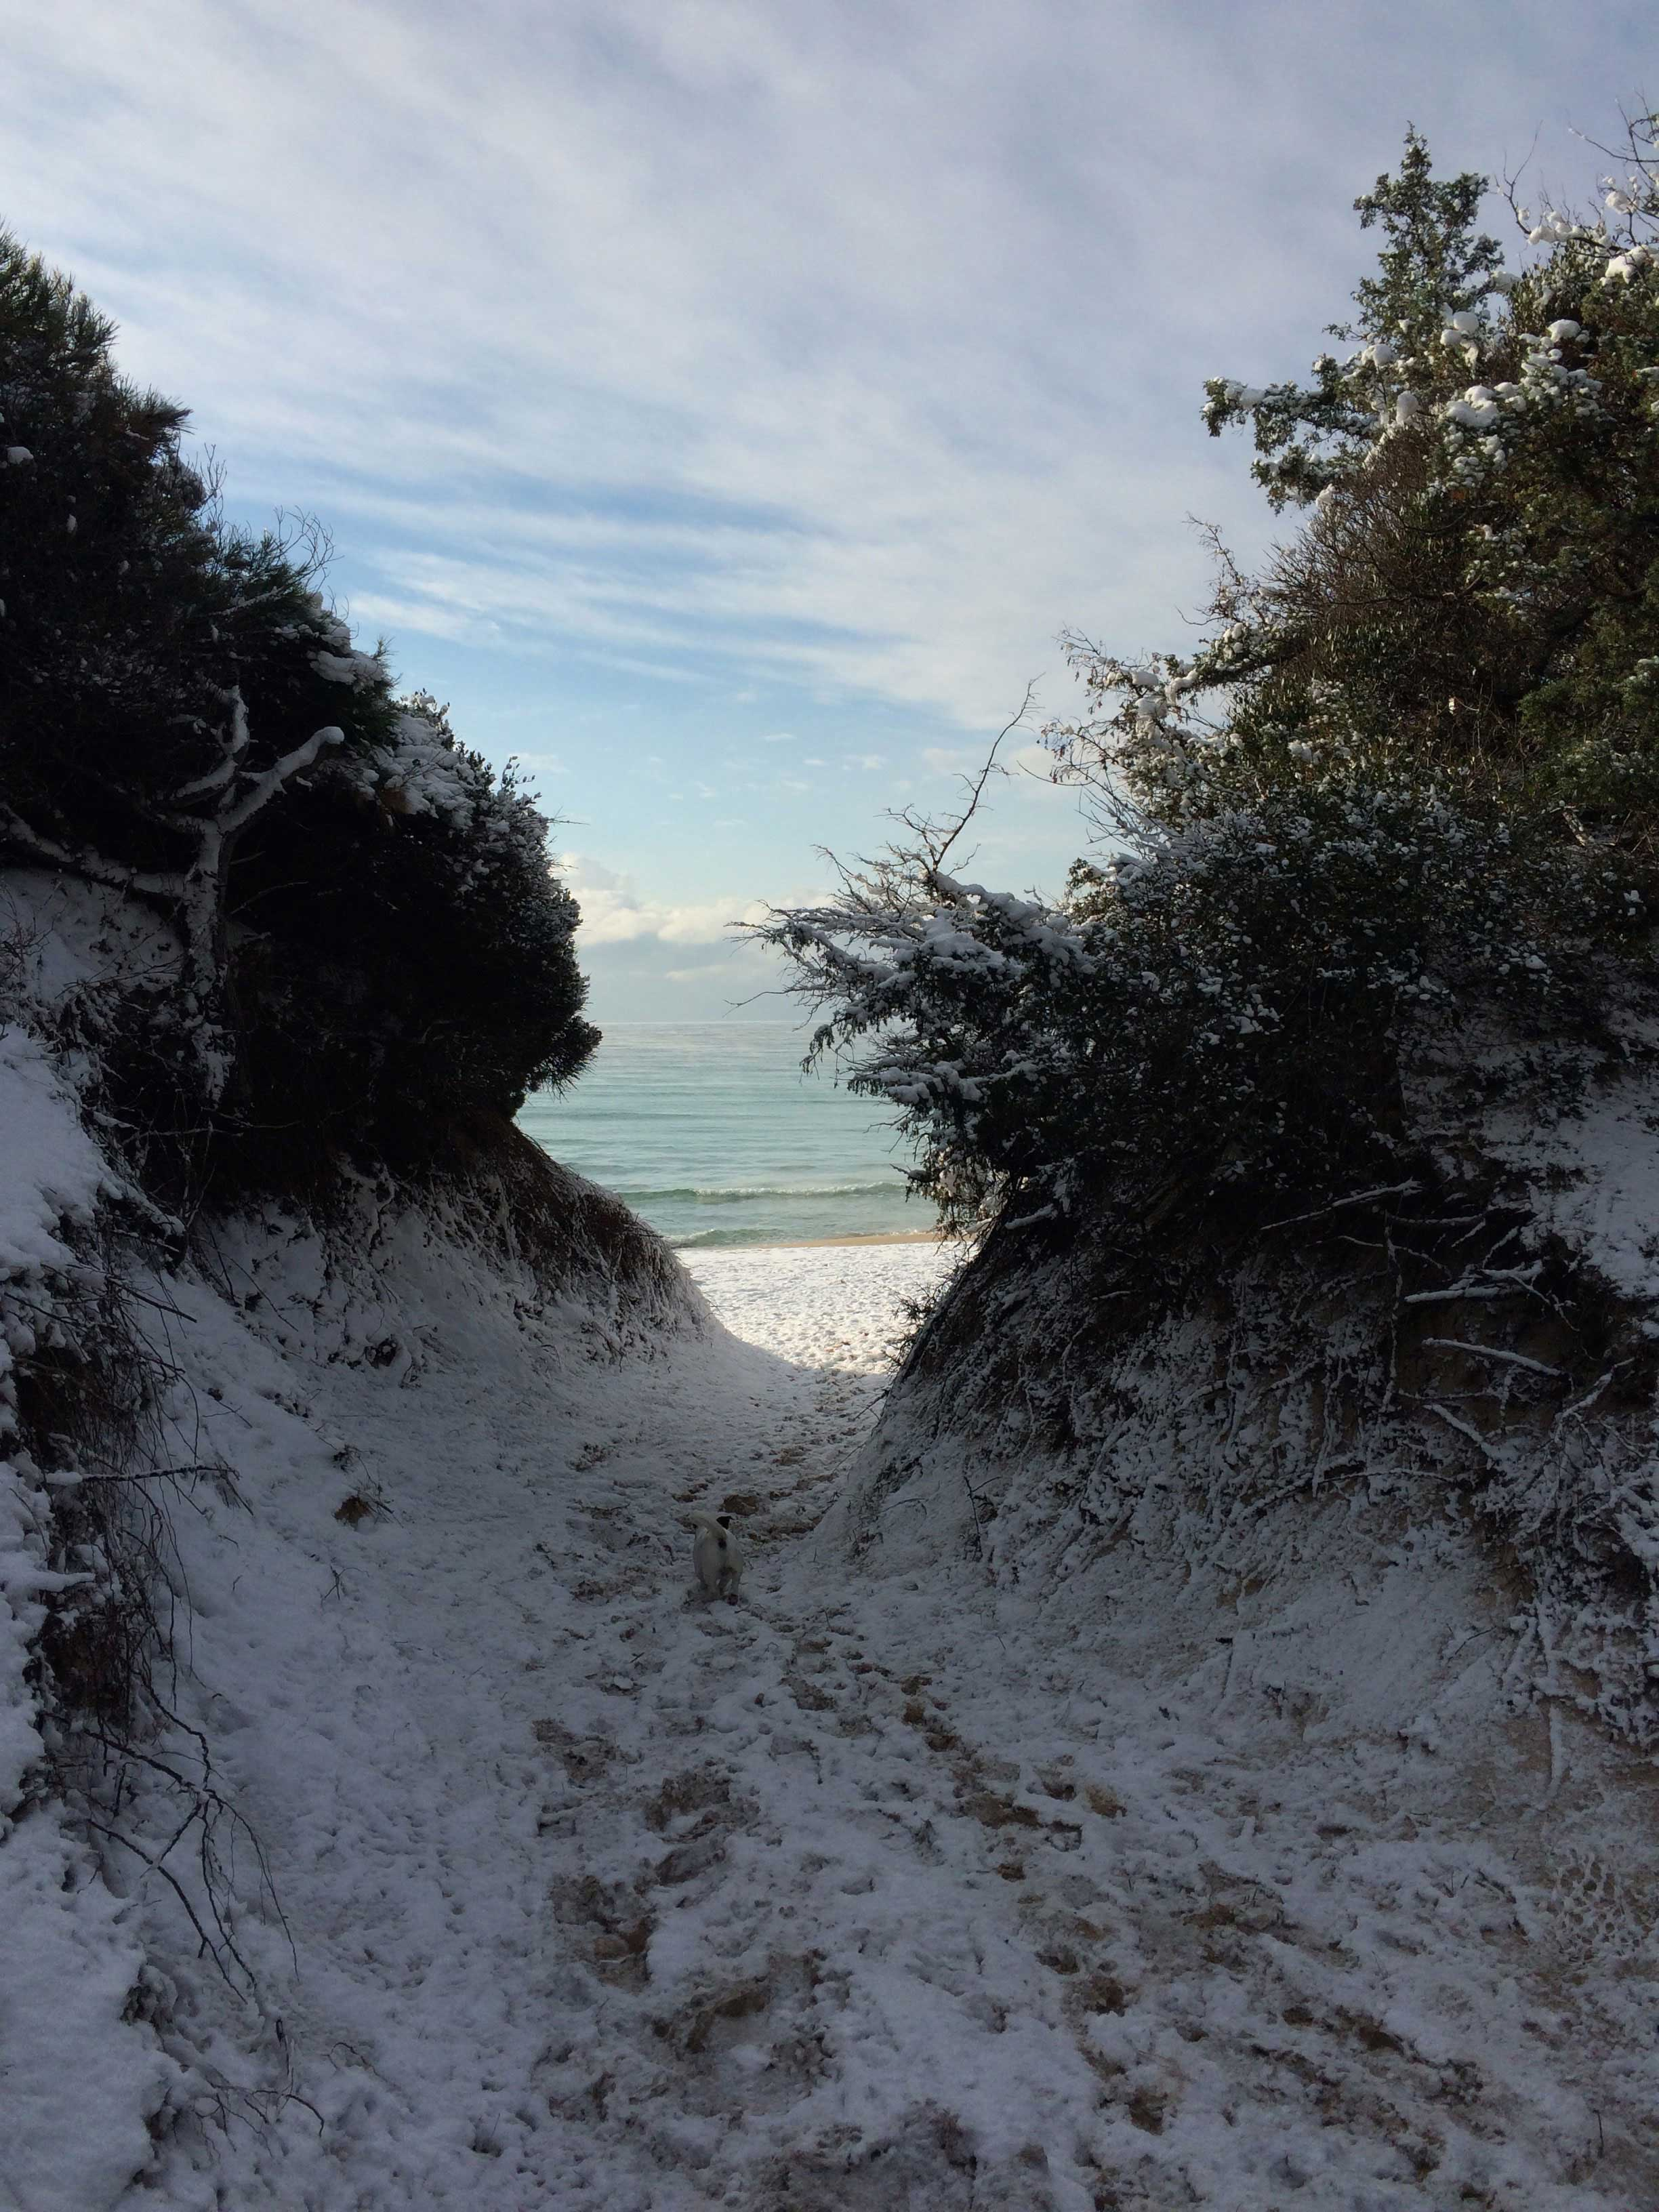 Snowy beach seen through the dunes